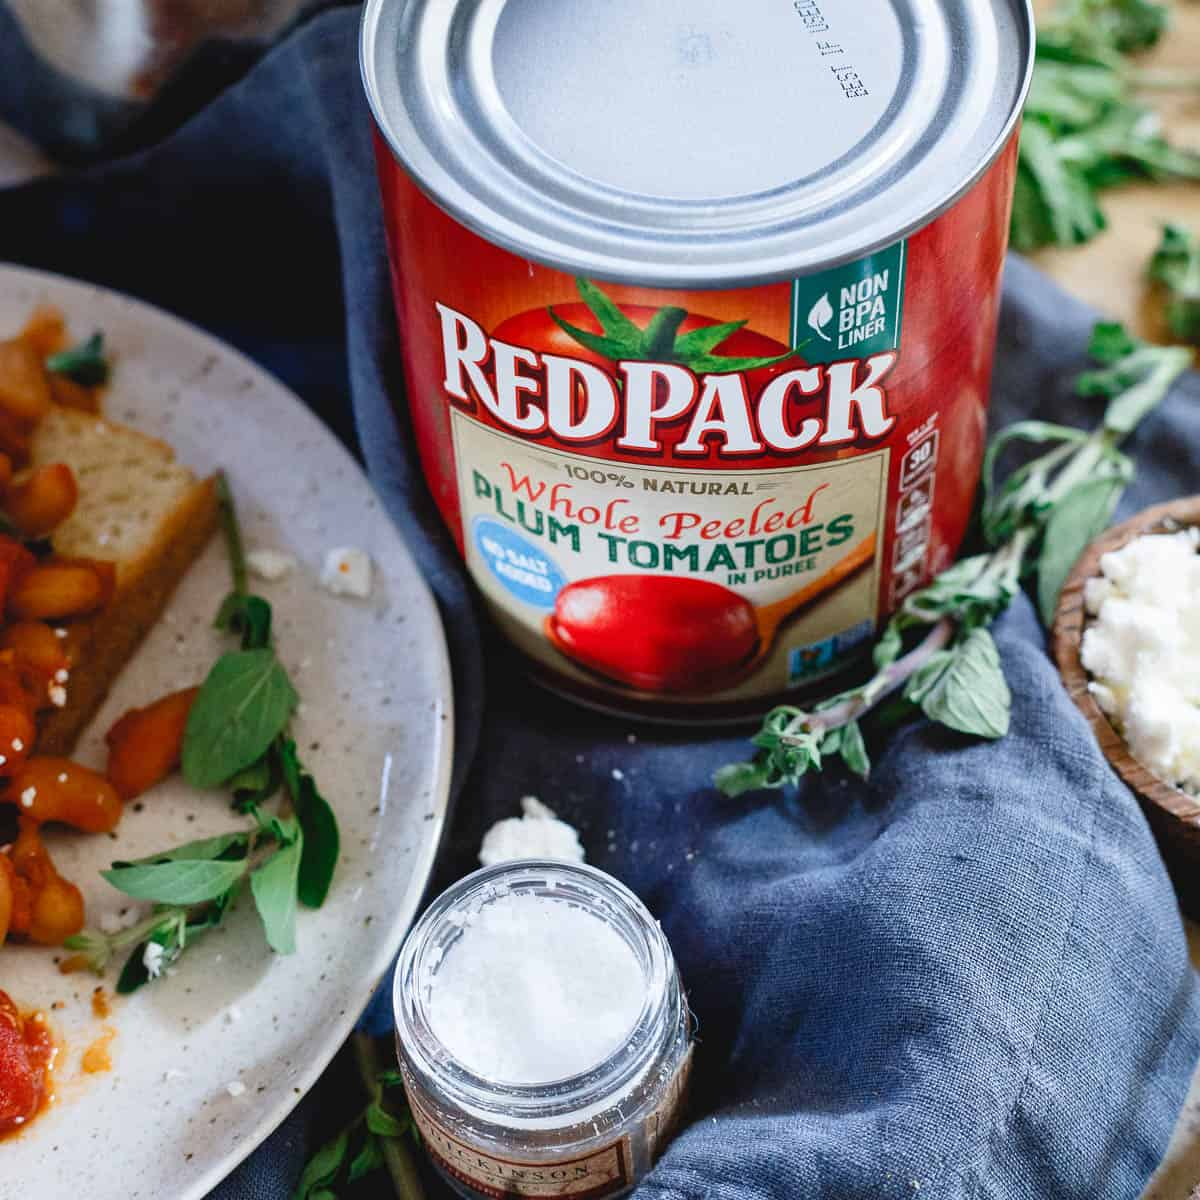 RedPack whole peeled plum tomatoes give this hearty white bean dish a lovely tomato flavor. Combined with bacon and onions, it's a cozy meal perfect for winter.